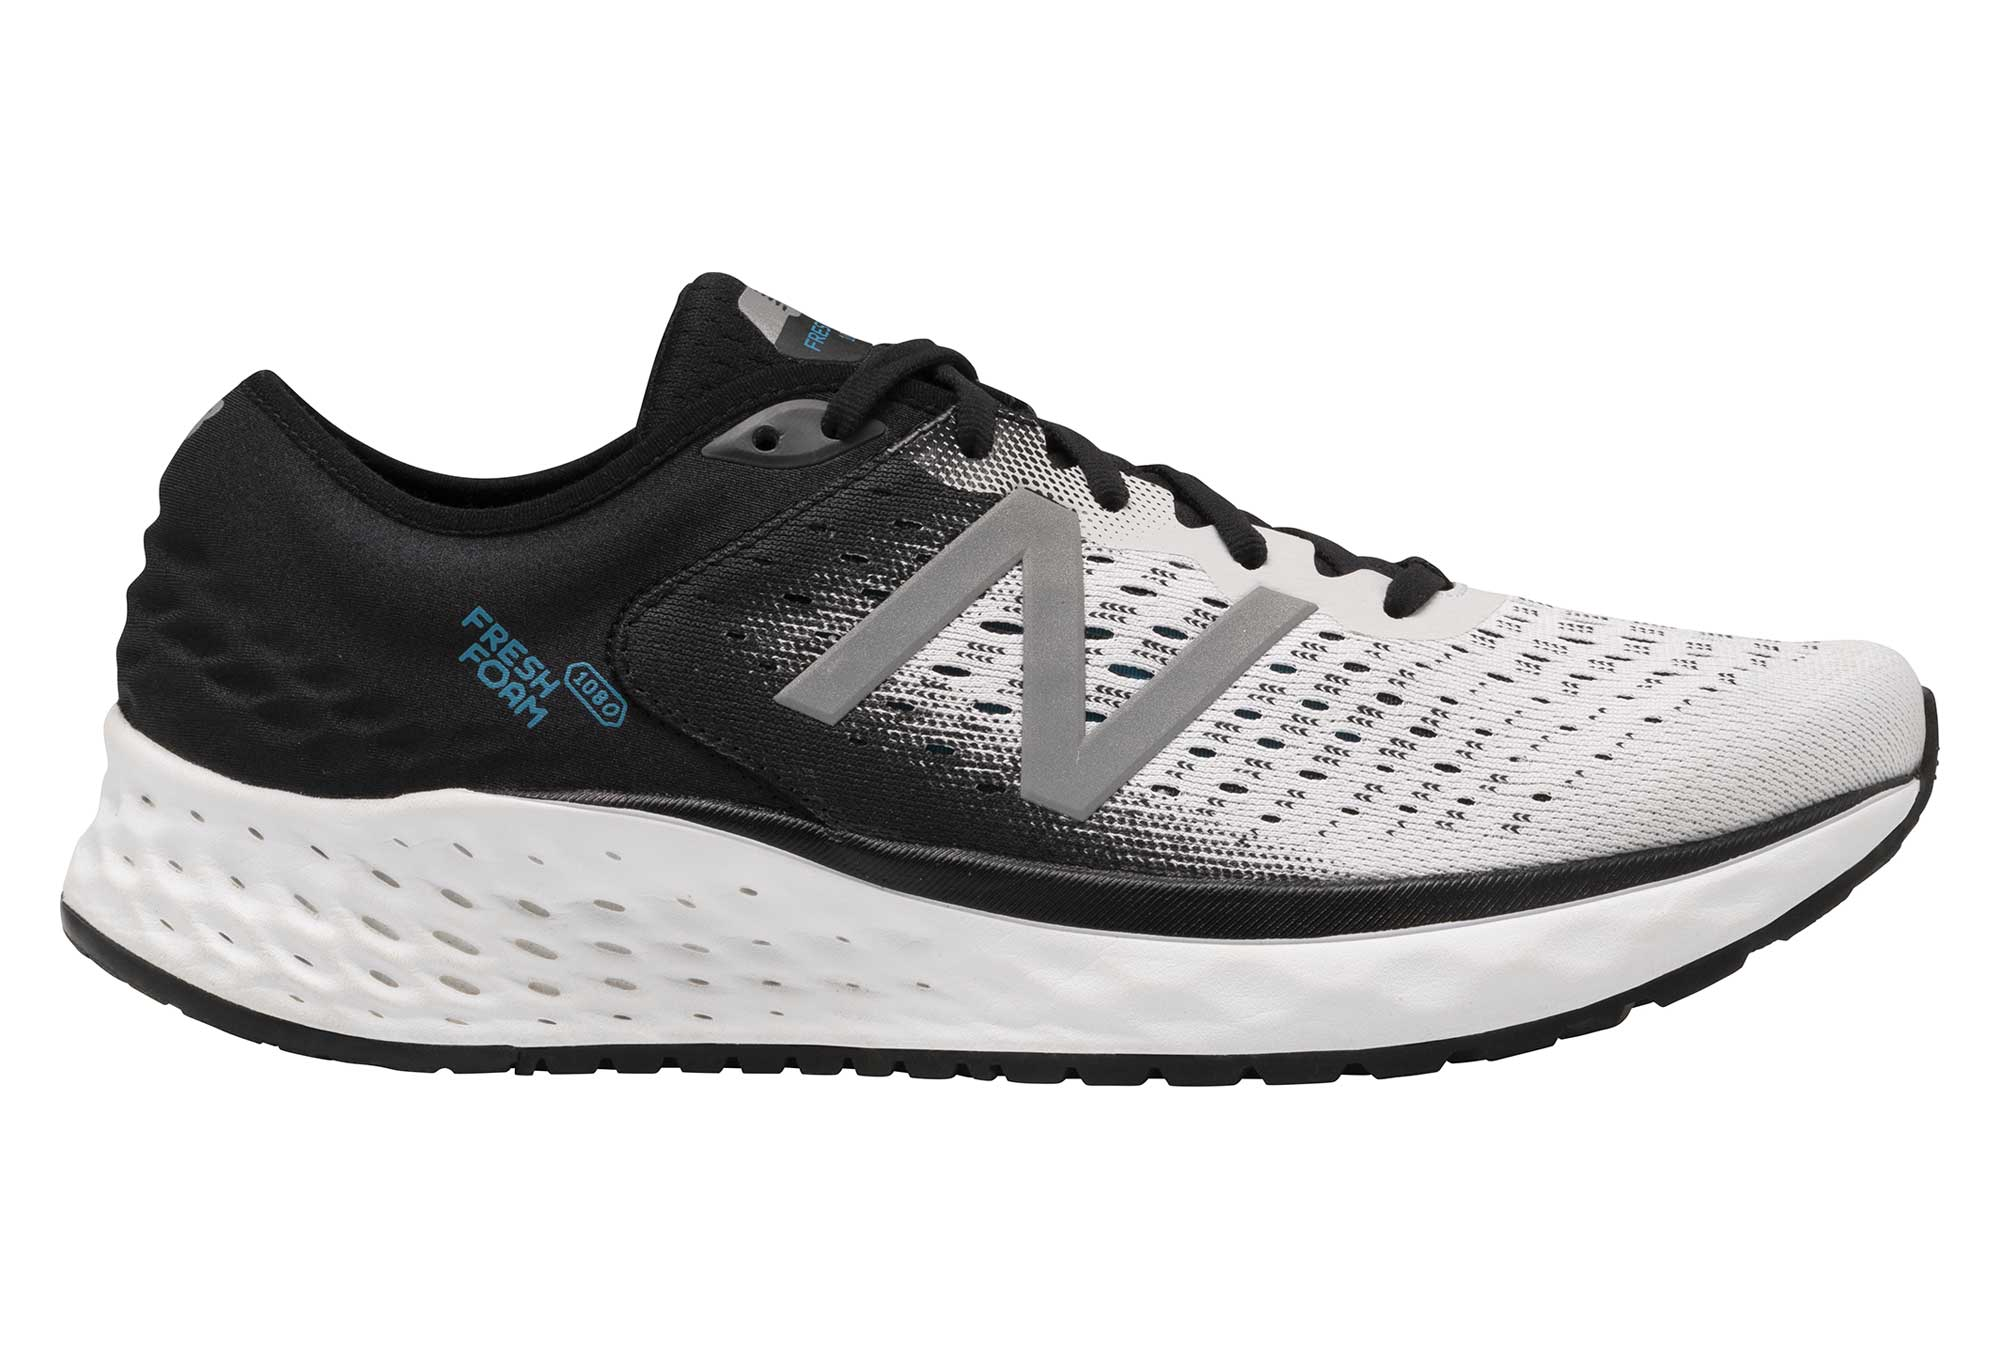 New Balance Fresh Foam 1080 V9 Blanco Negro Hombres